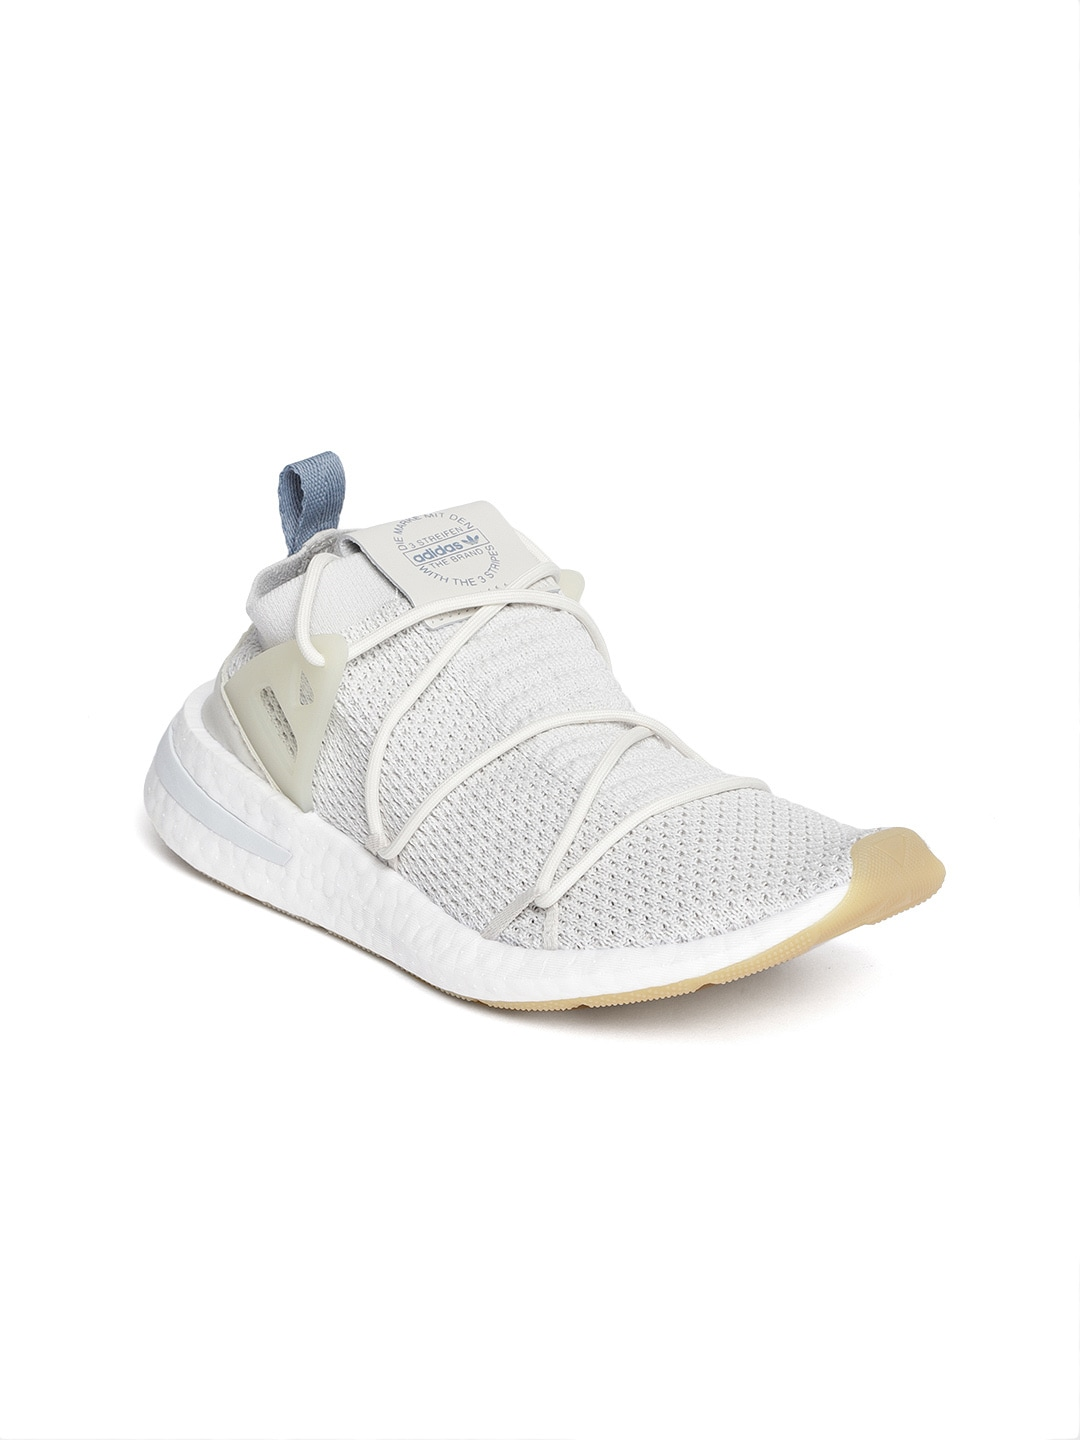 fd2aac1c918f Adidas Originals Off White Shoes - Buy Adidas Originals Off White Shoes  online in India